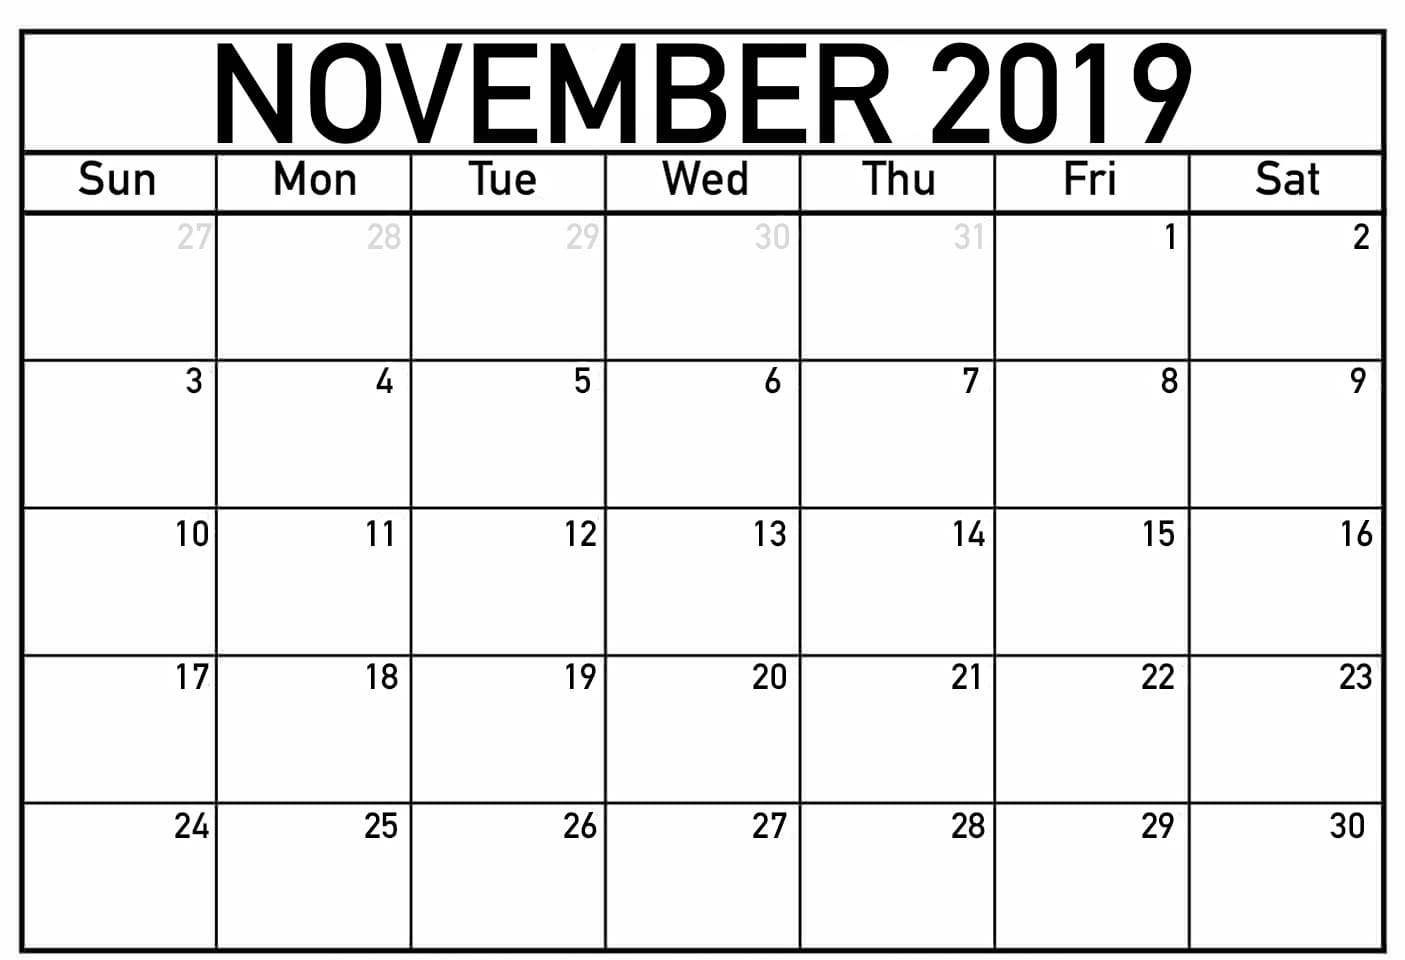 Fillable Calendar For November 2019 Printable | Printable for Fillable Printable Calendar